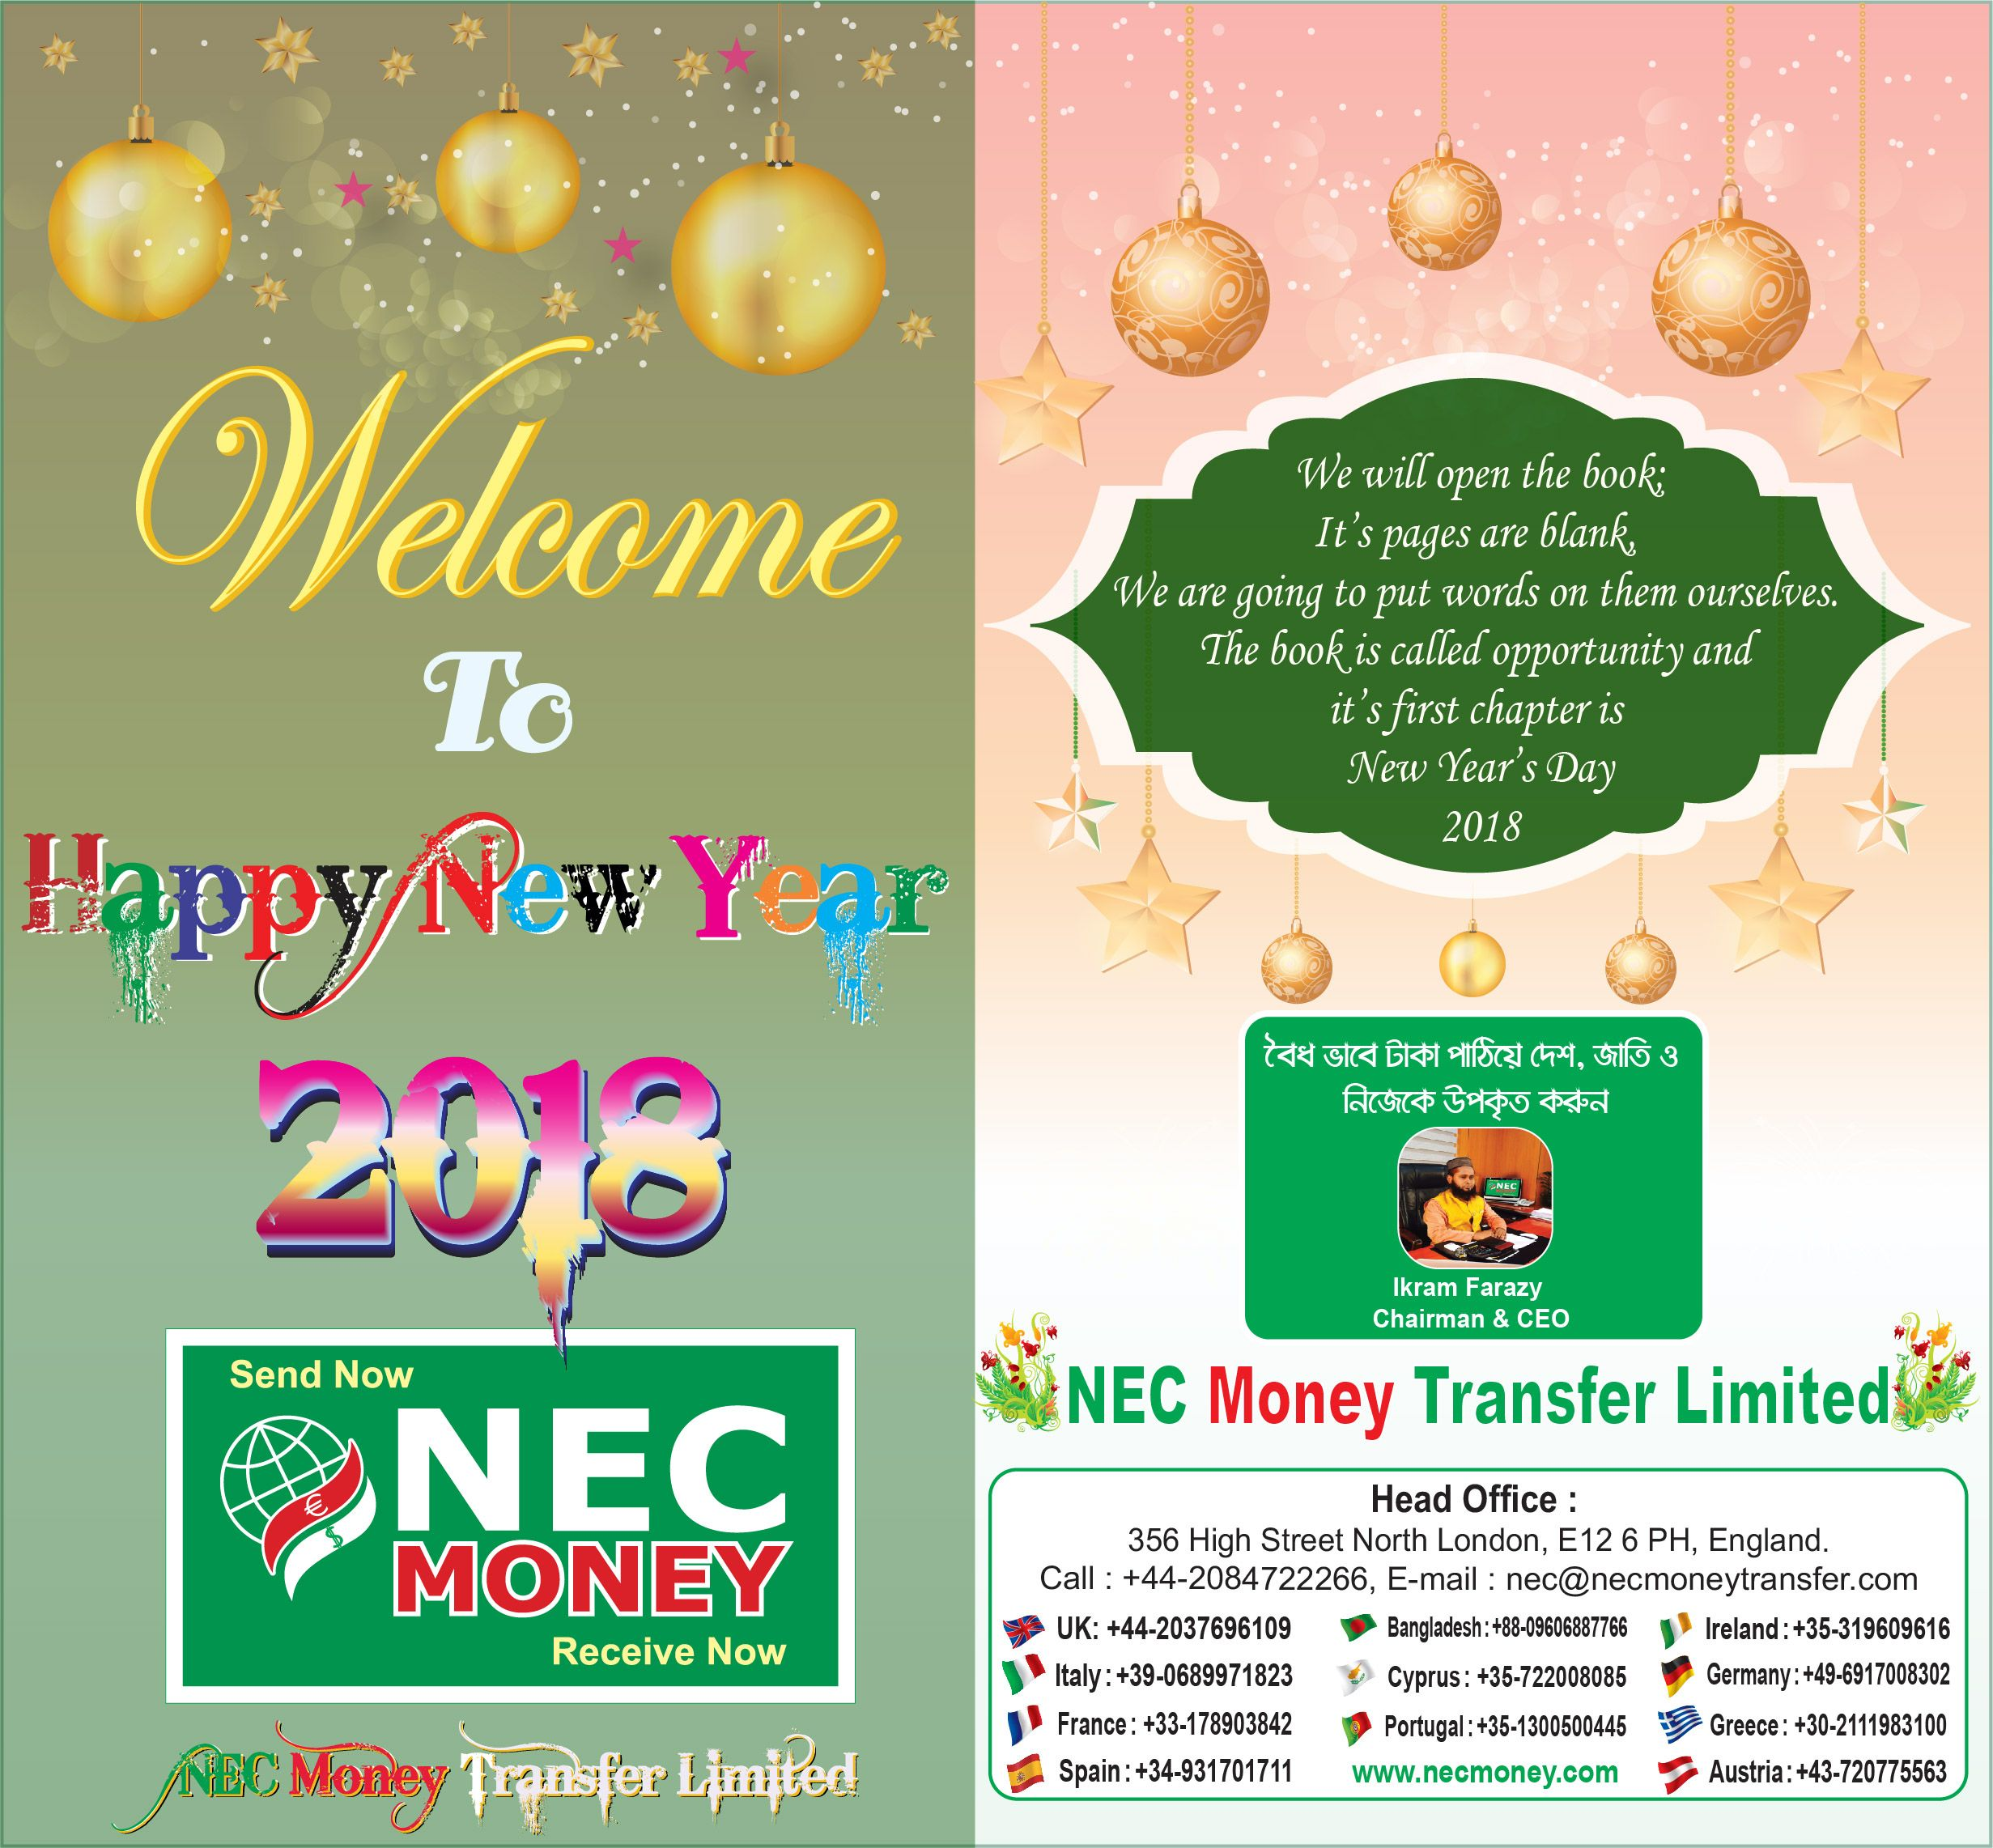 Pin By Nec Money Transfer Limited On New Year Greetings 2018